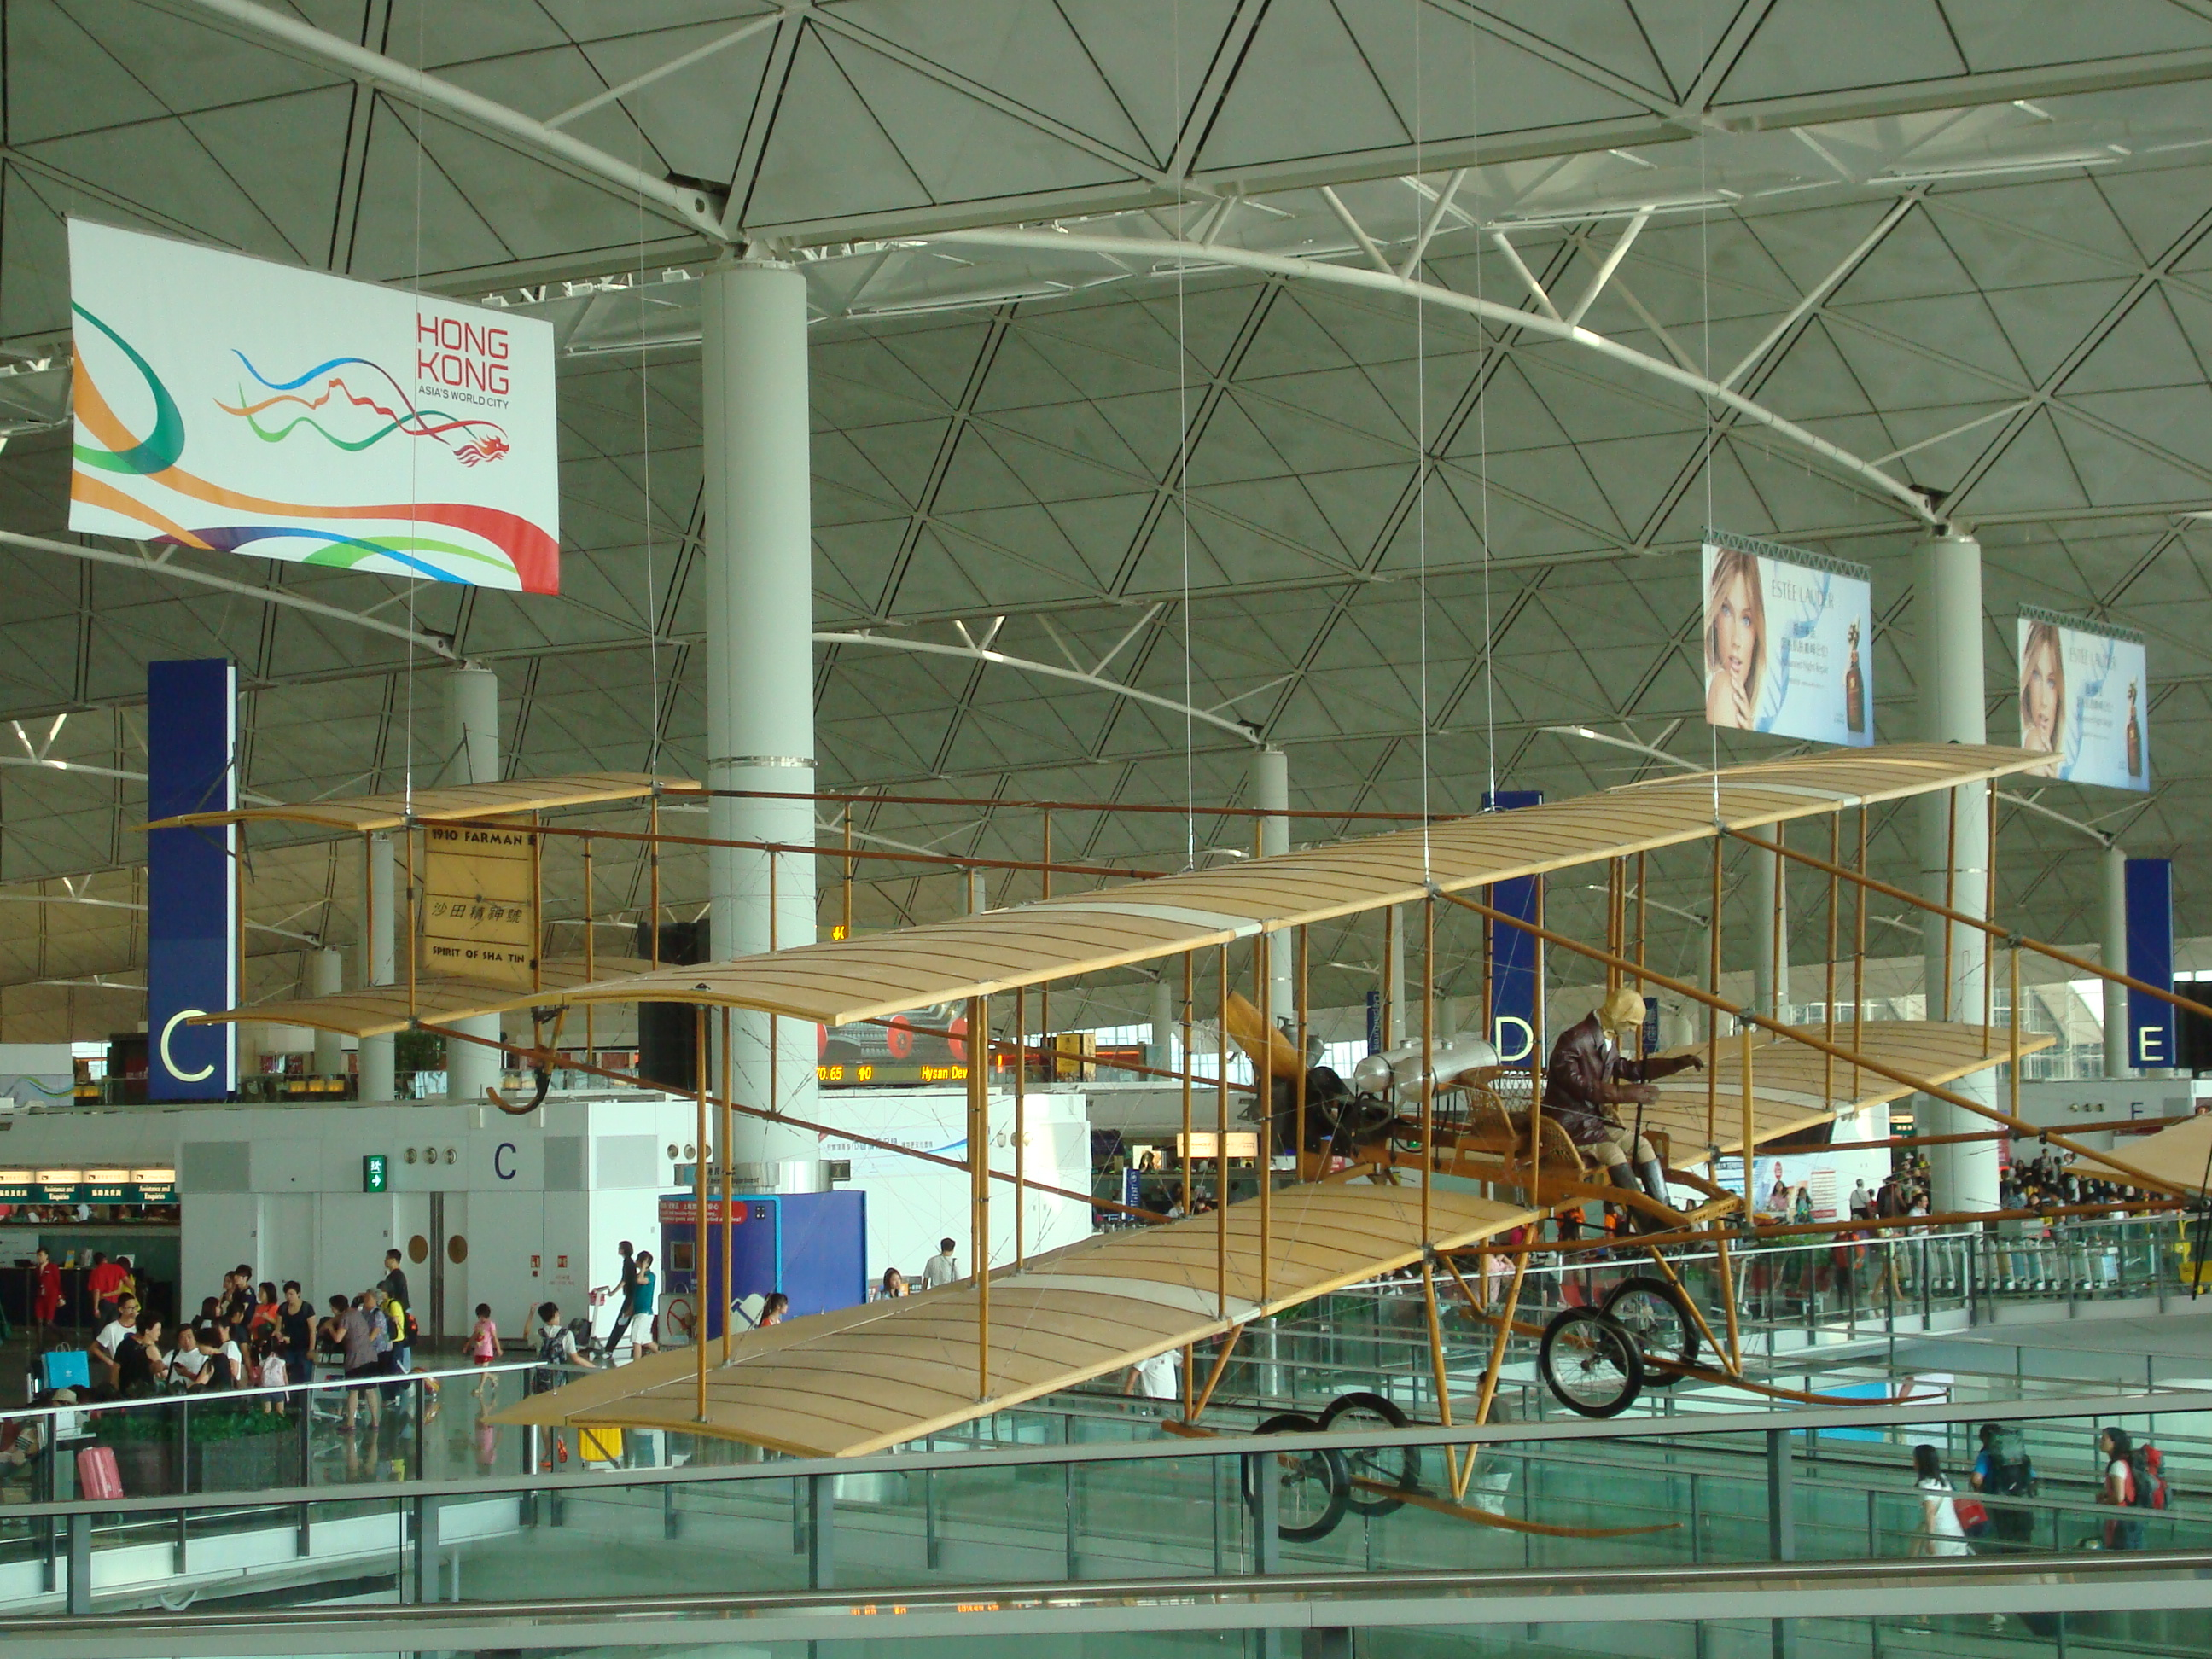 Wright Brothers Flyer in Hong Kong Airport